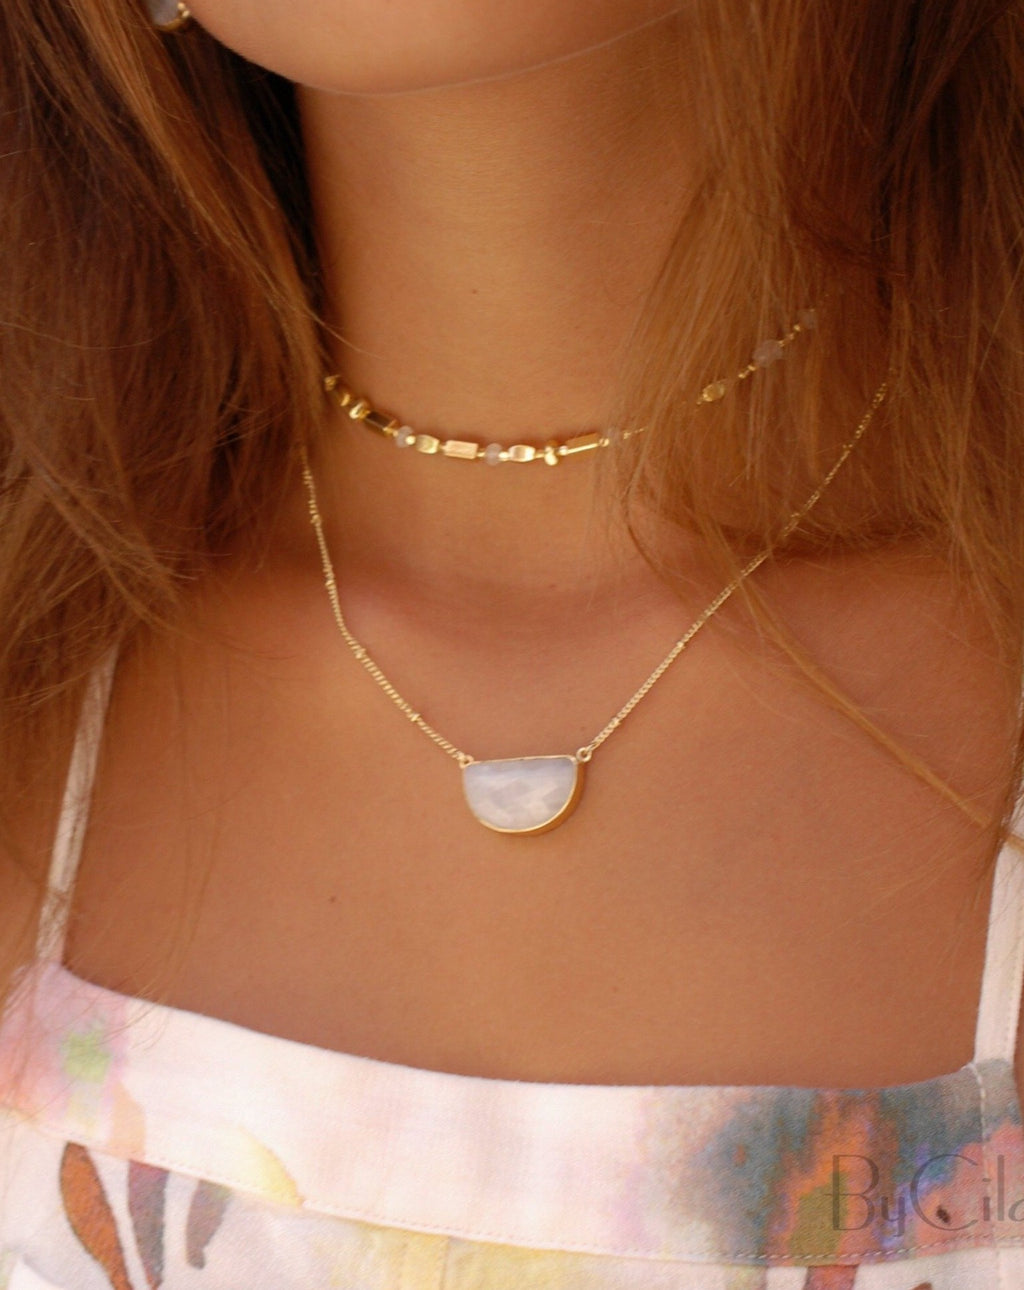 Celeste Half Moon Necklace * Moonstone * Gold Vermeil or Sterling Silver 925 * BJN006